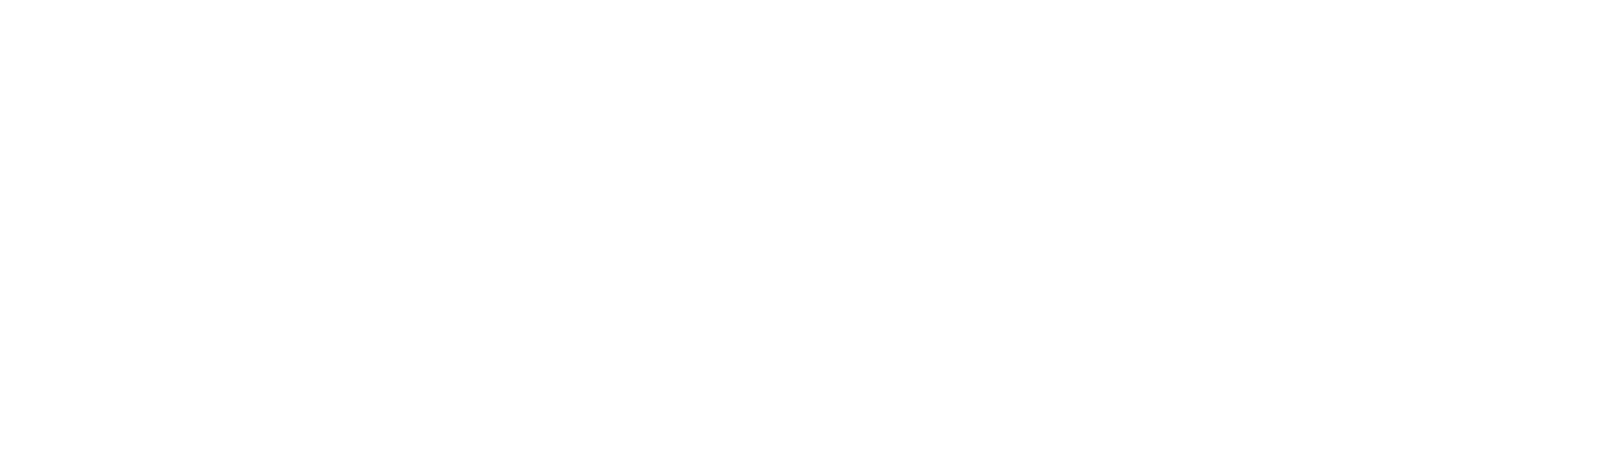 Business Direct Connect logo White